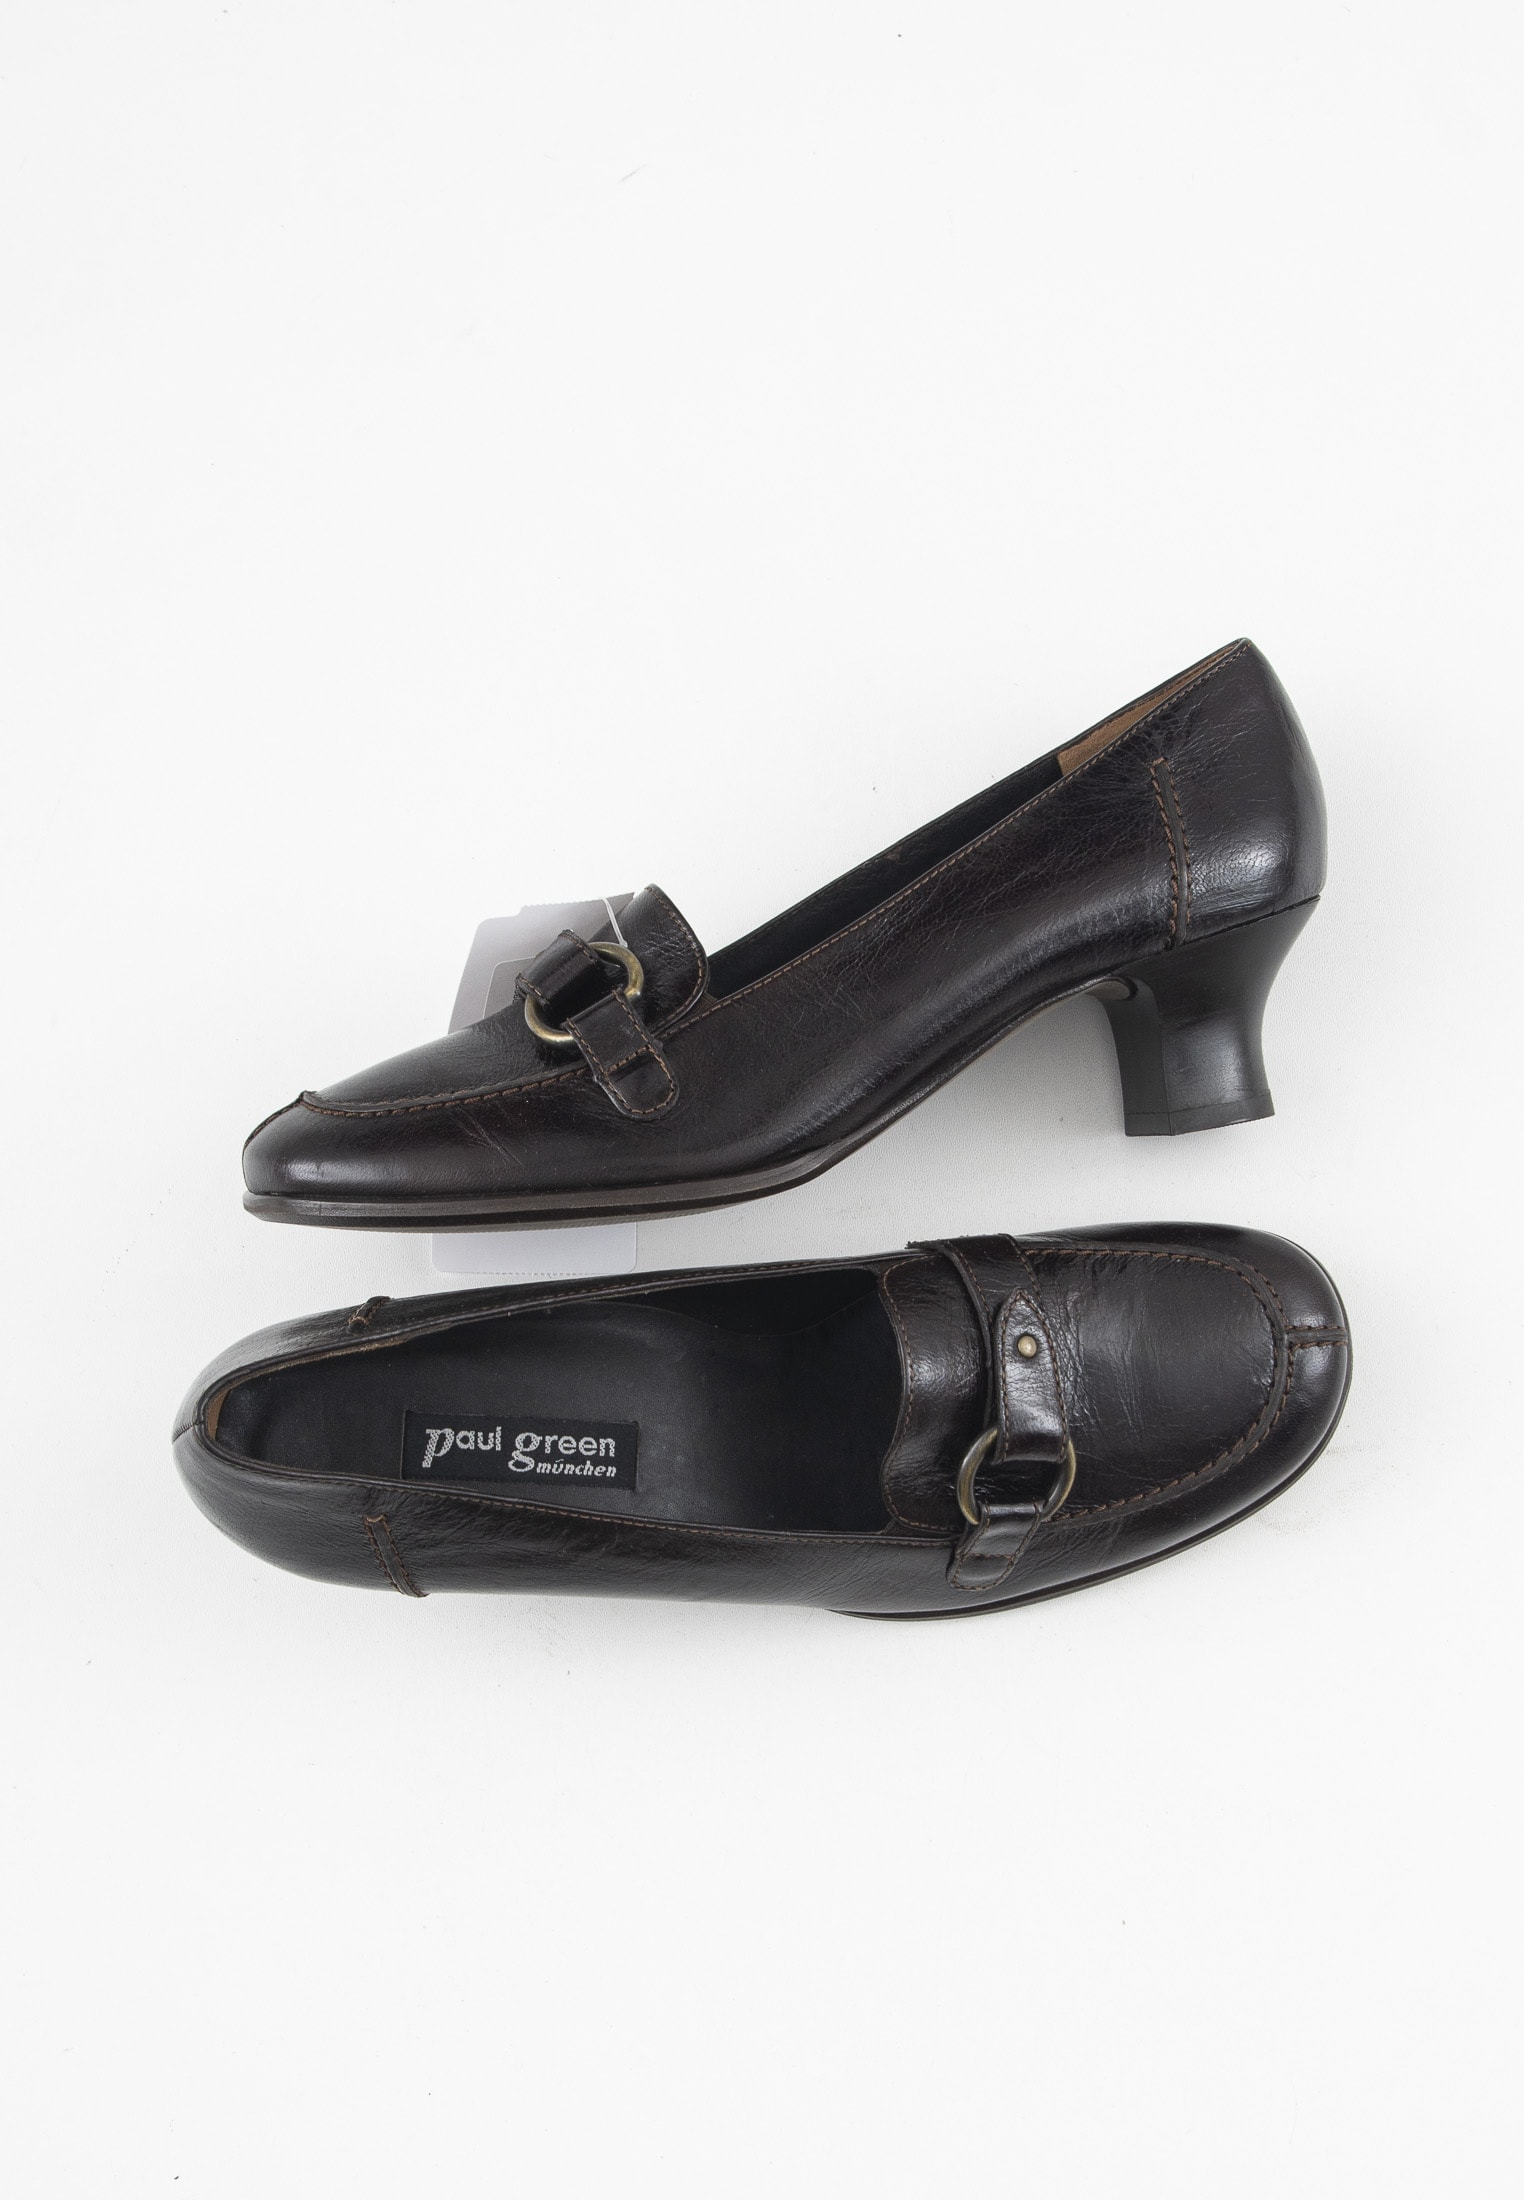 Paul Green pumps, brun, 40